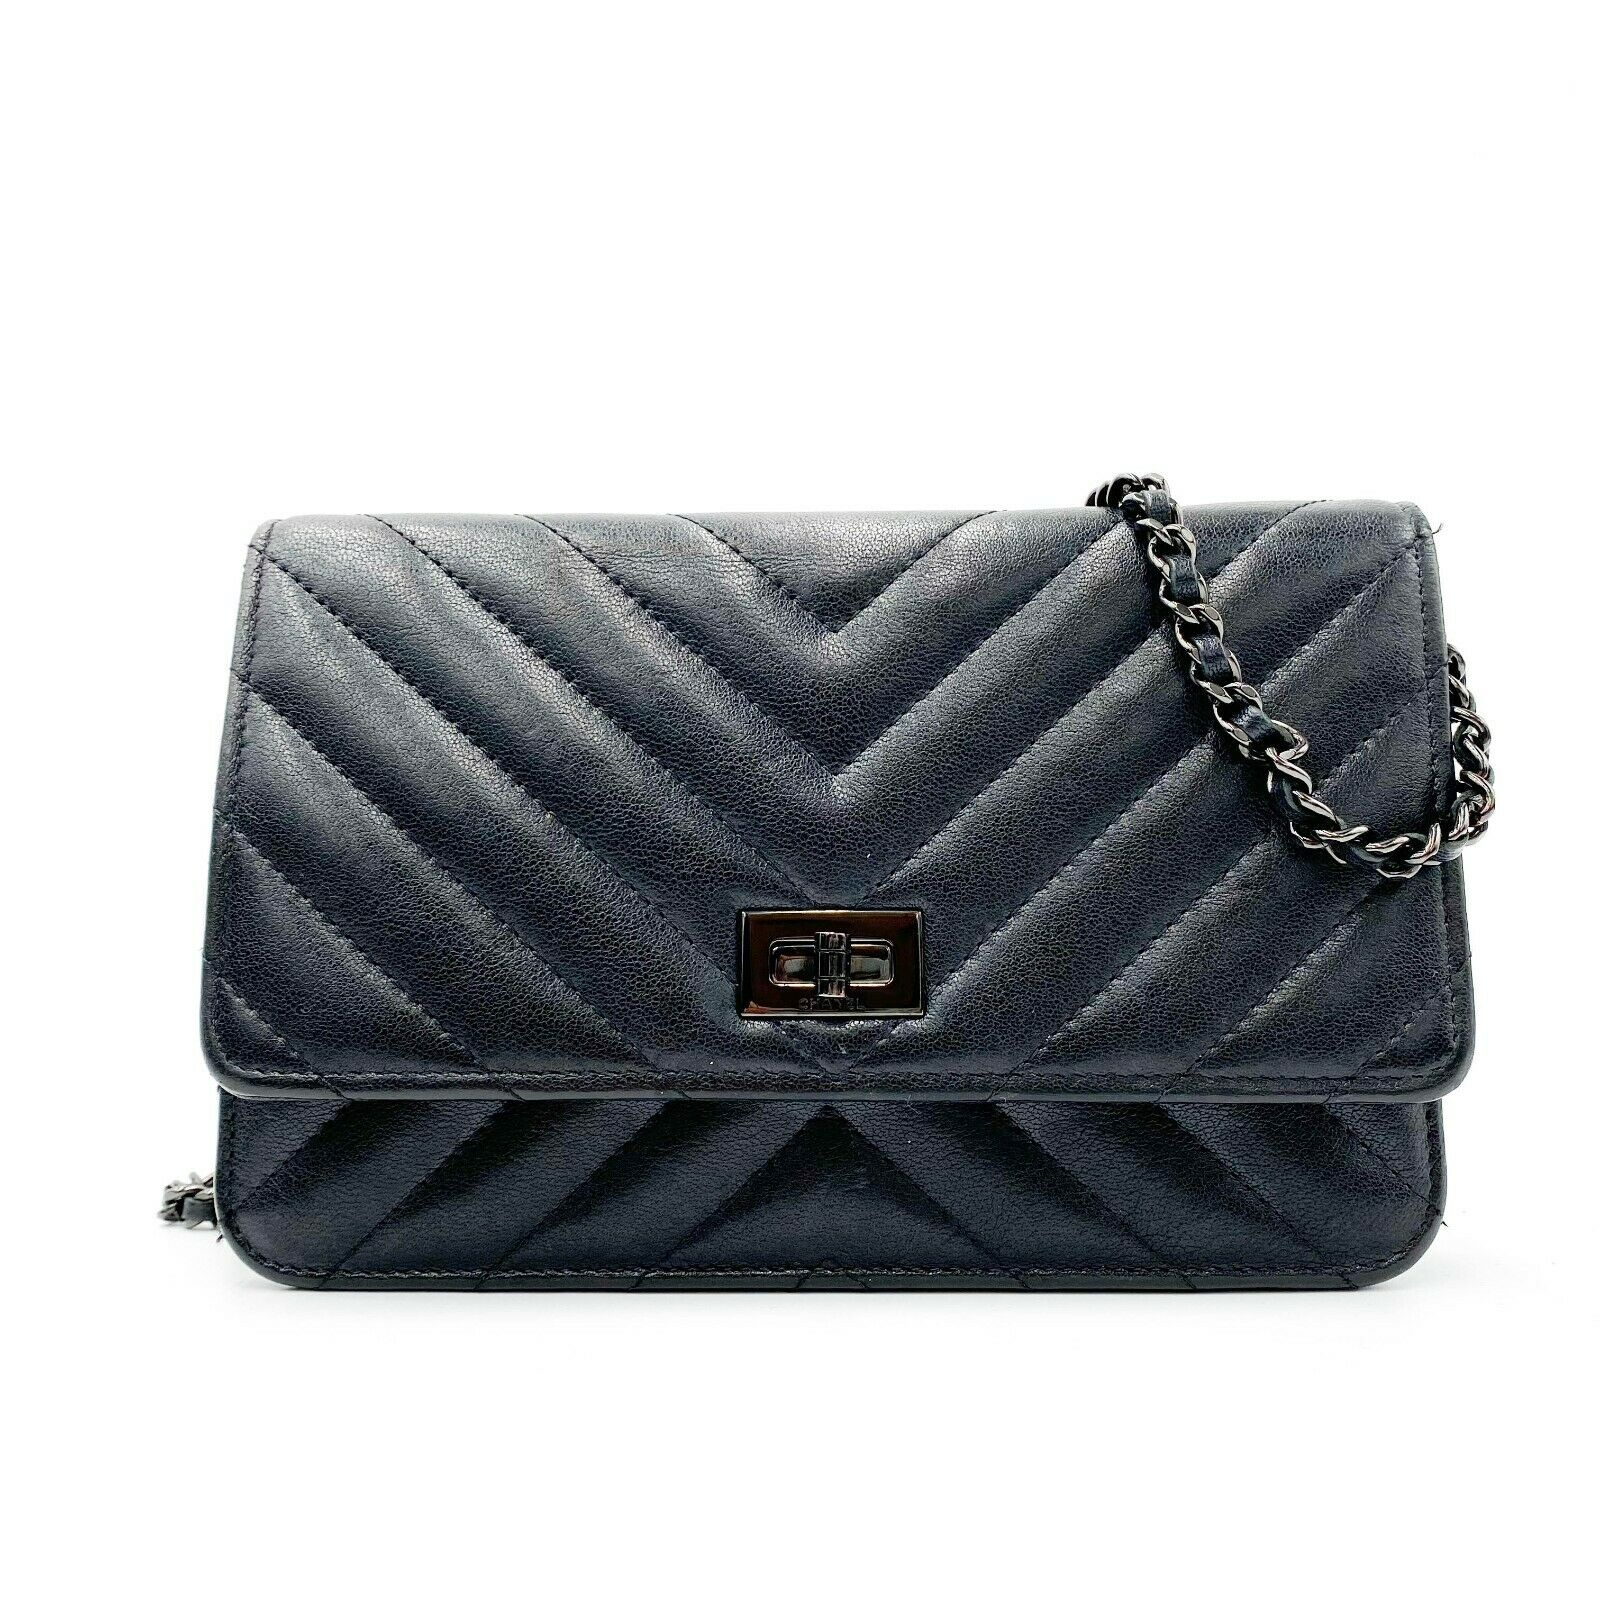 Chanel Wallet on Chain 2.55 Reissue Sheepskin Chevron Woc So Black Leather